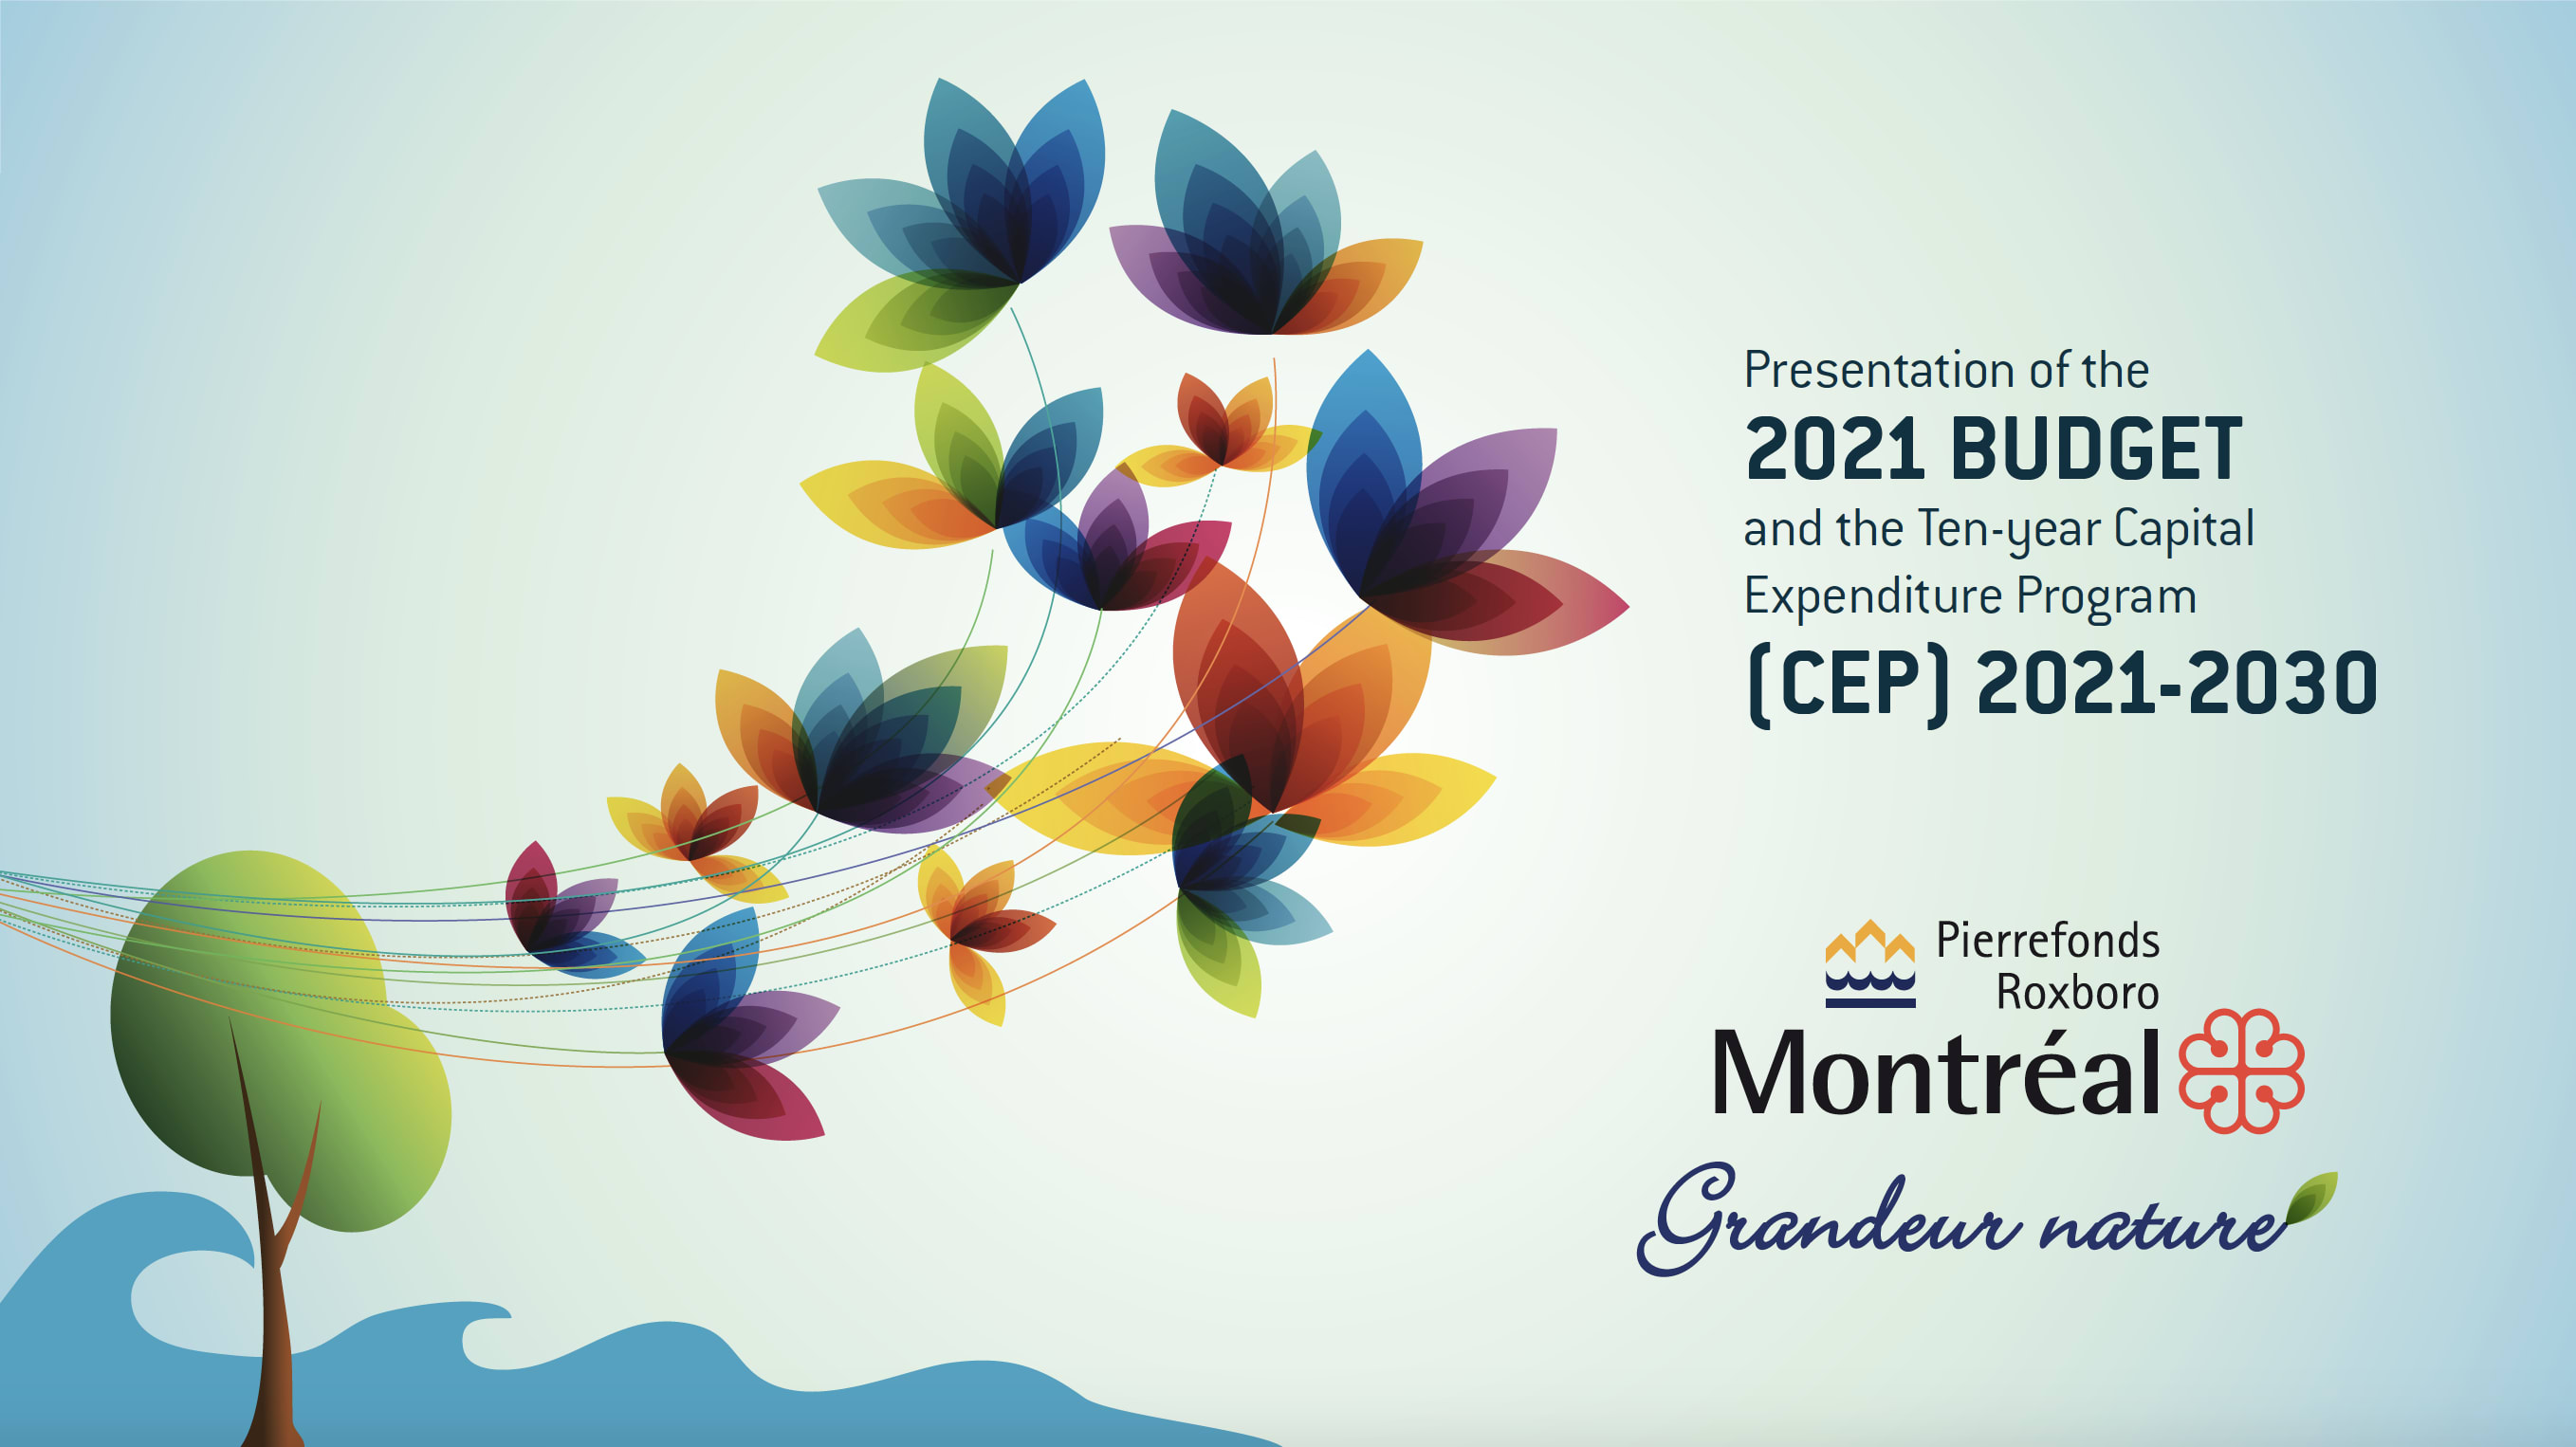 Public presentation of the 2021 Budget and CEP 2021-2030 in Pierrefonds-Roxboro